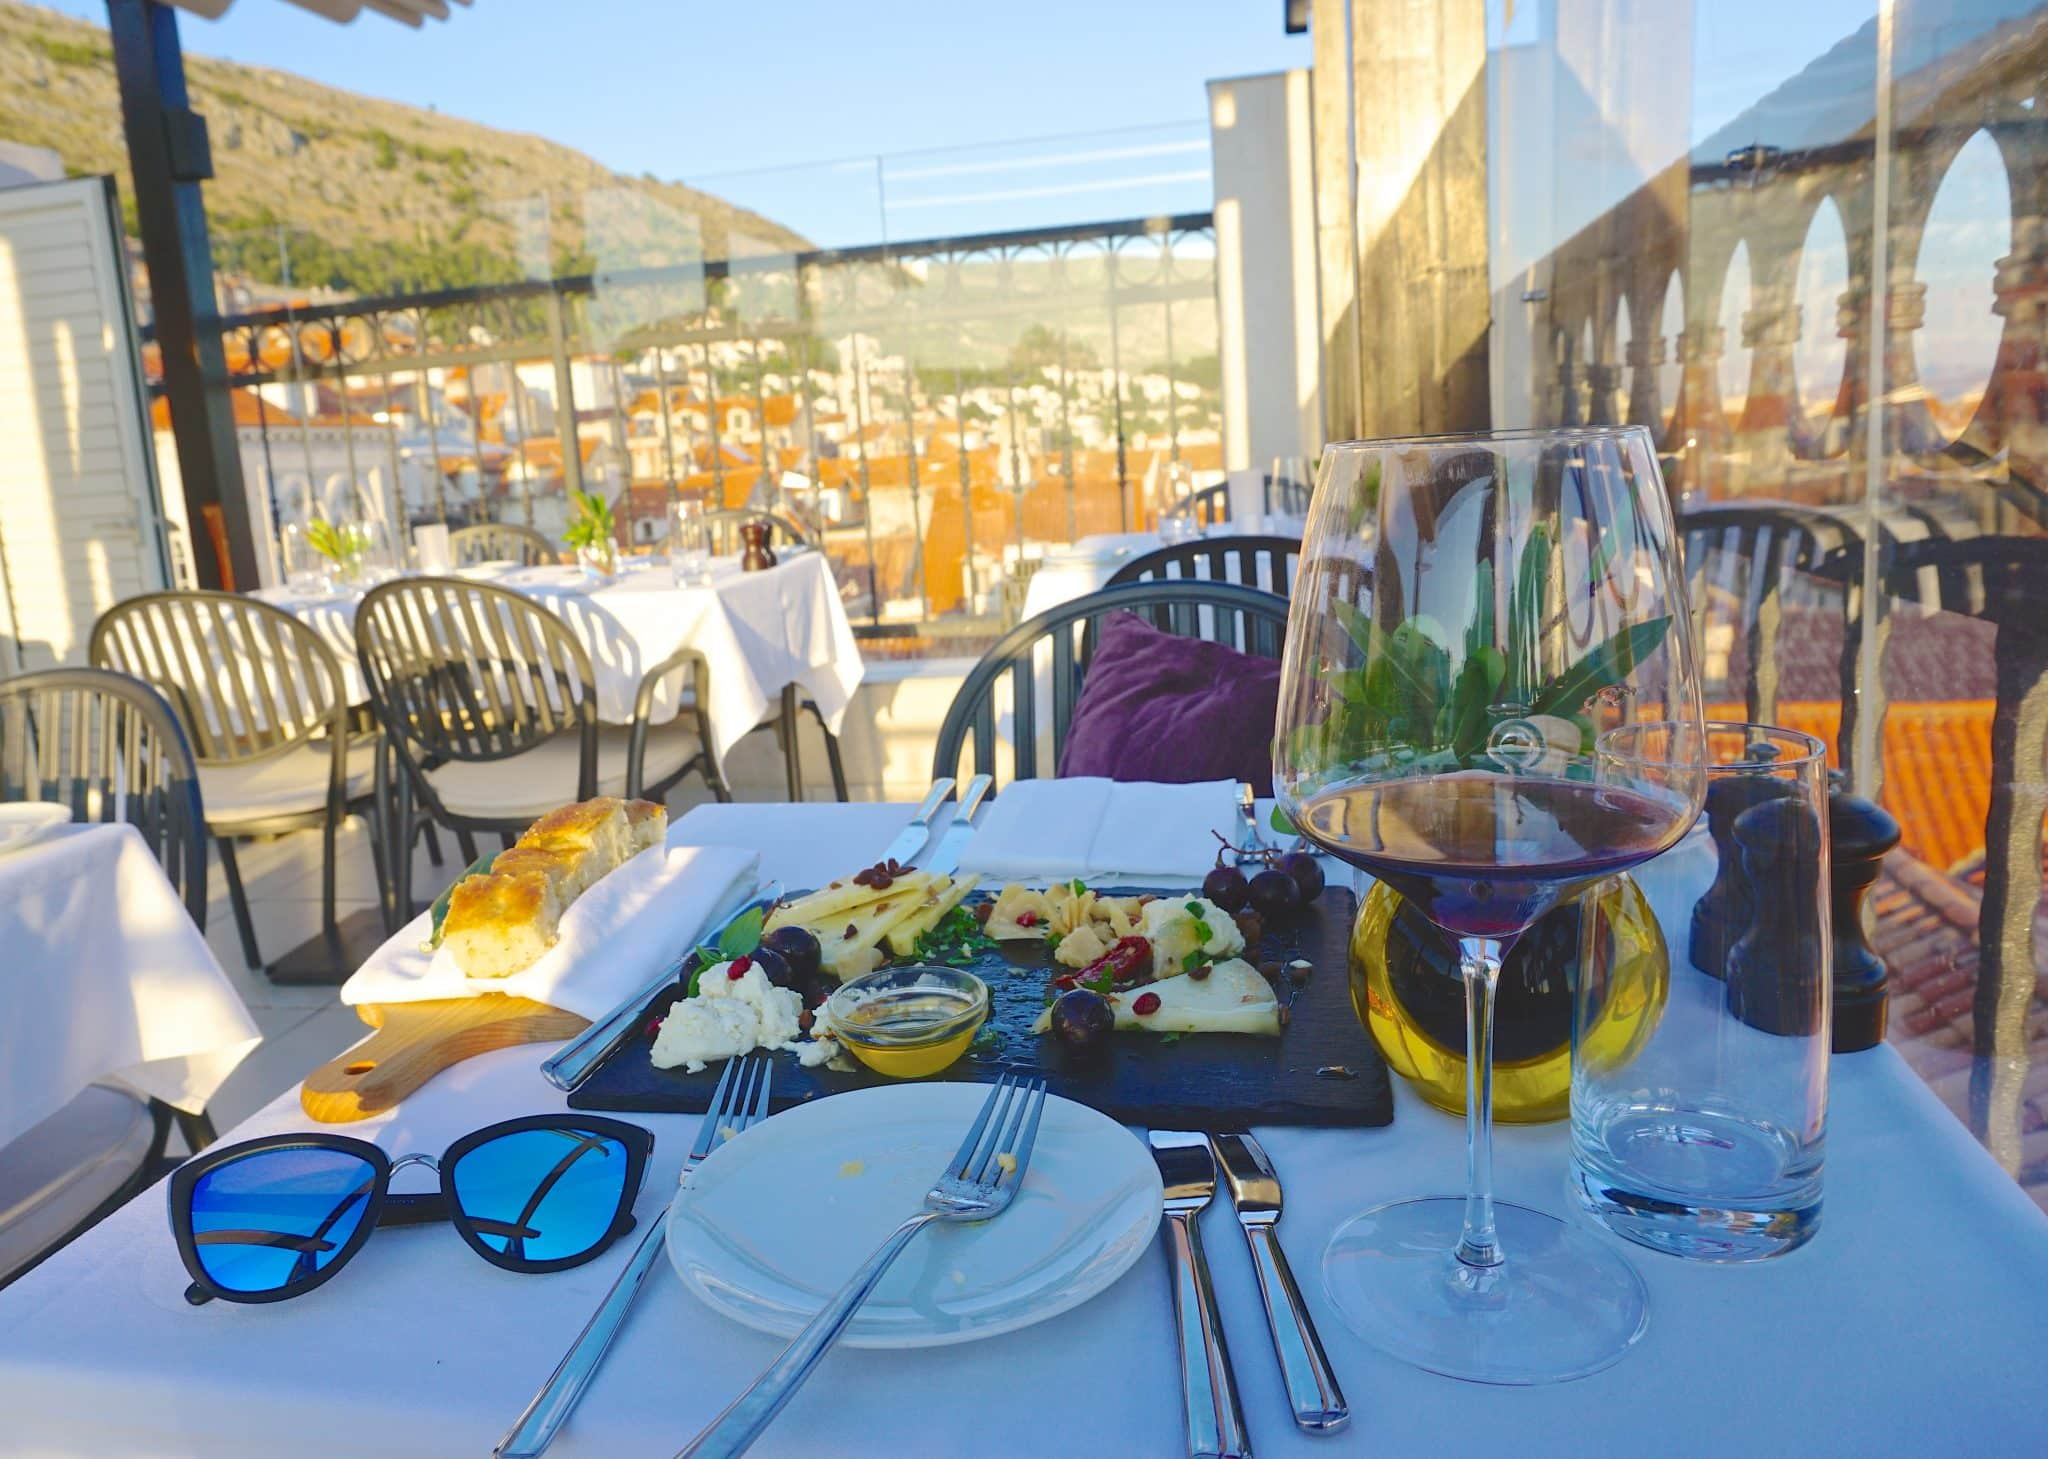 Cheese and olive oil plate with red wine at Above 5 overlooking Dubrovnik's Old Town in Croatia. This is one of the best restaurants in Dubrovnik with a view.